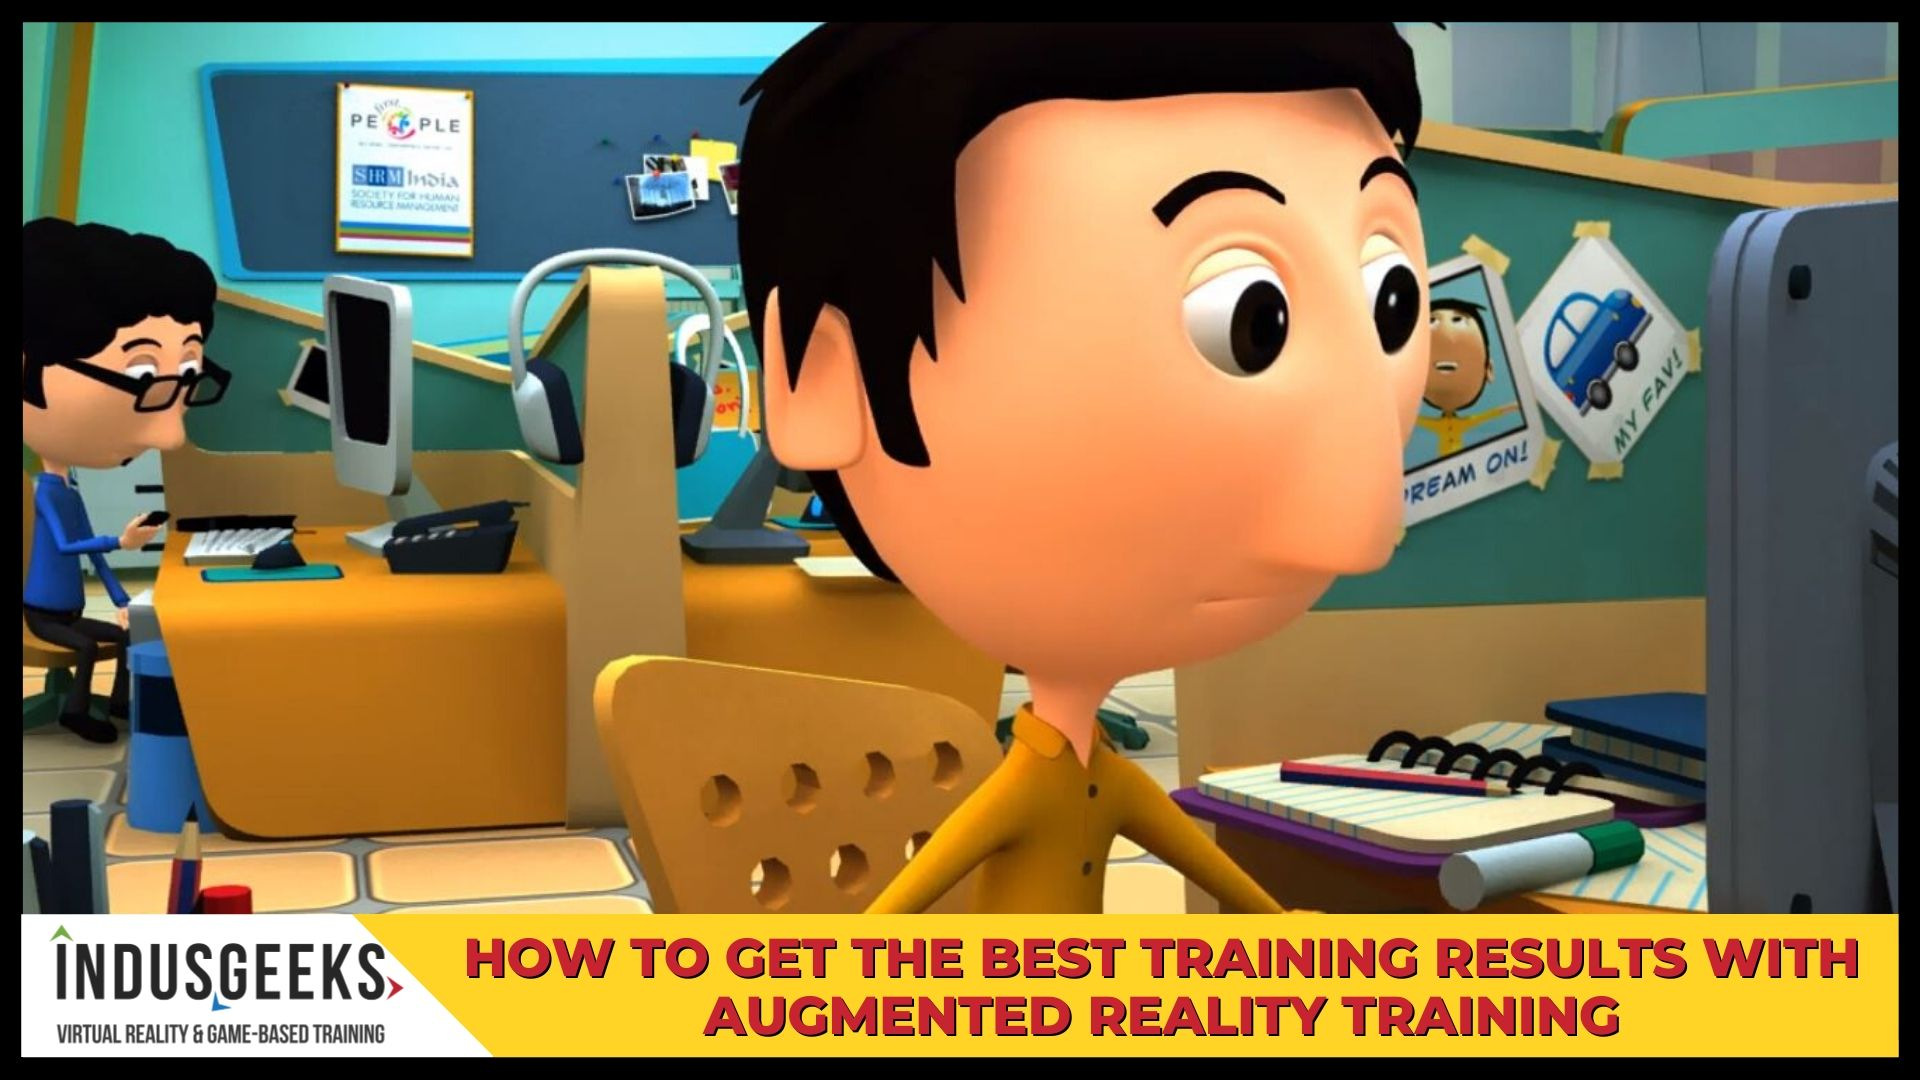 How to get the best training results with Augmented Reality Training